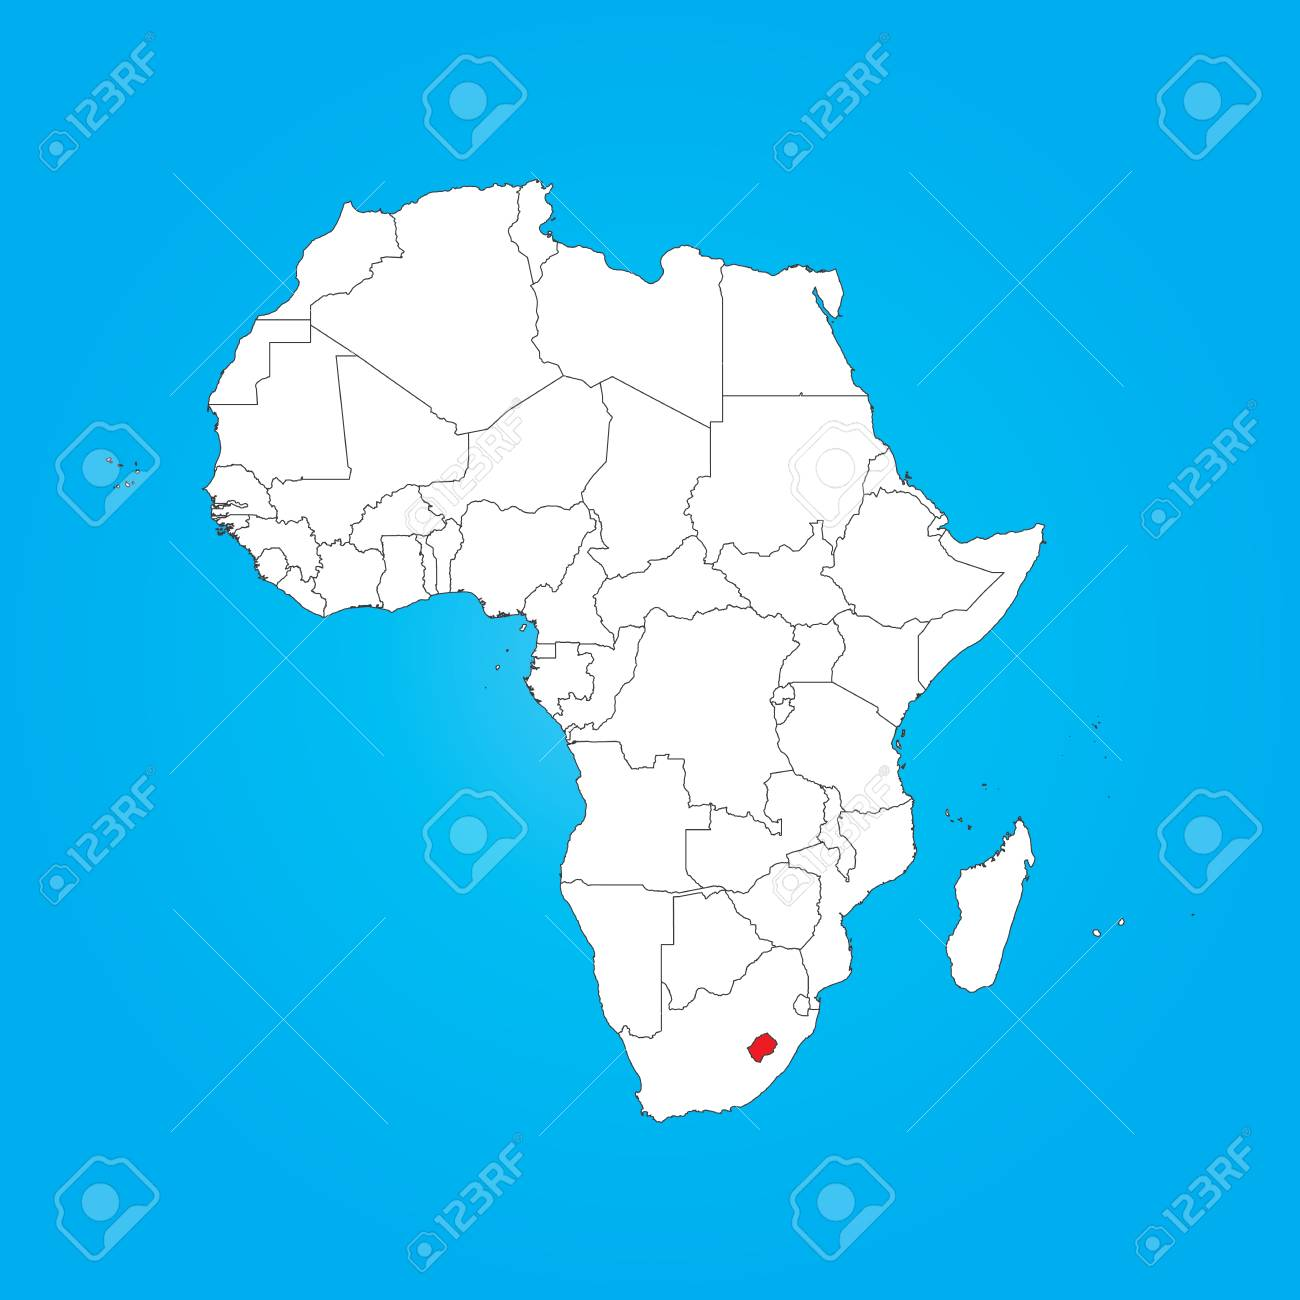 A Map Of Africa With A Selected Country Of Lesotho Stock Photo